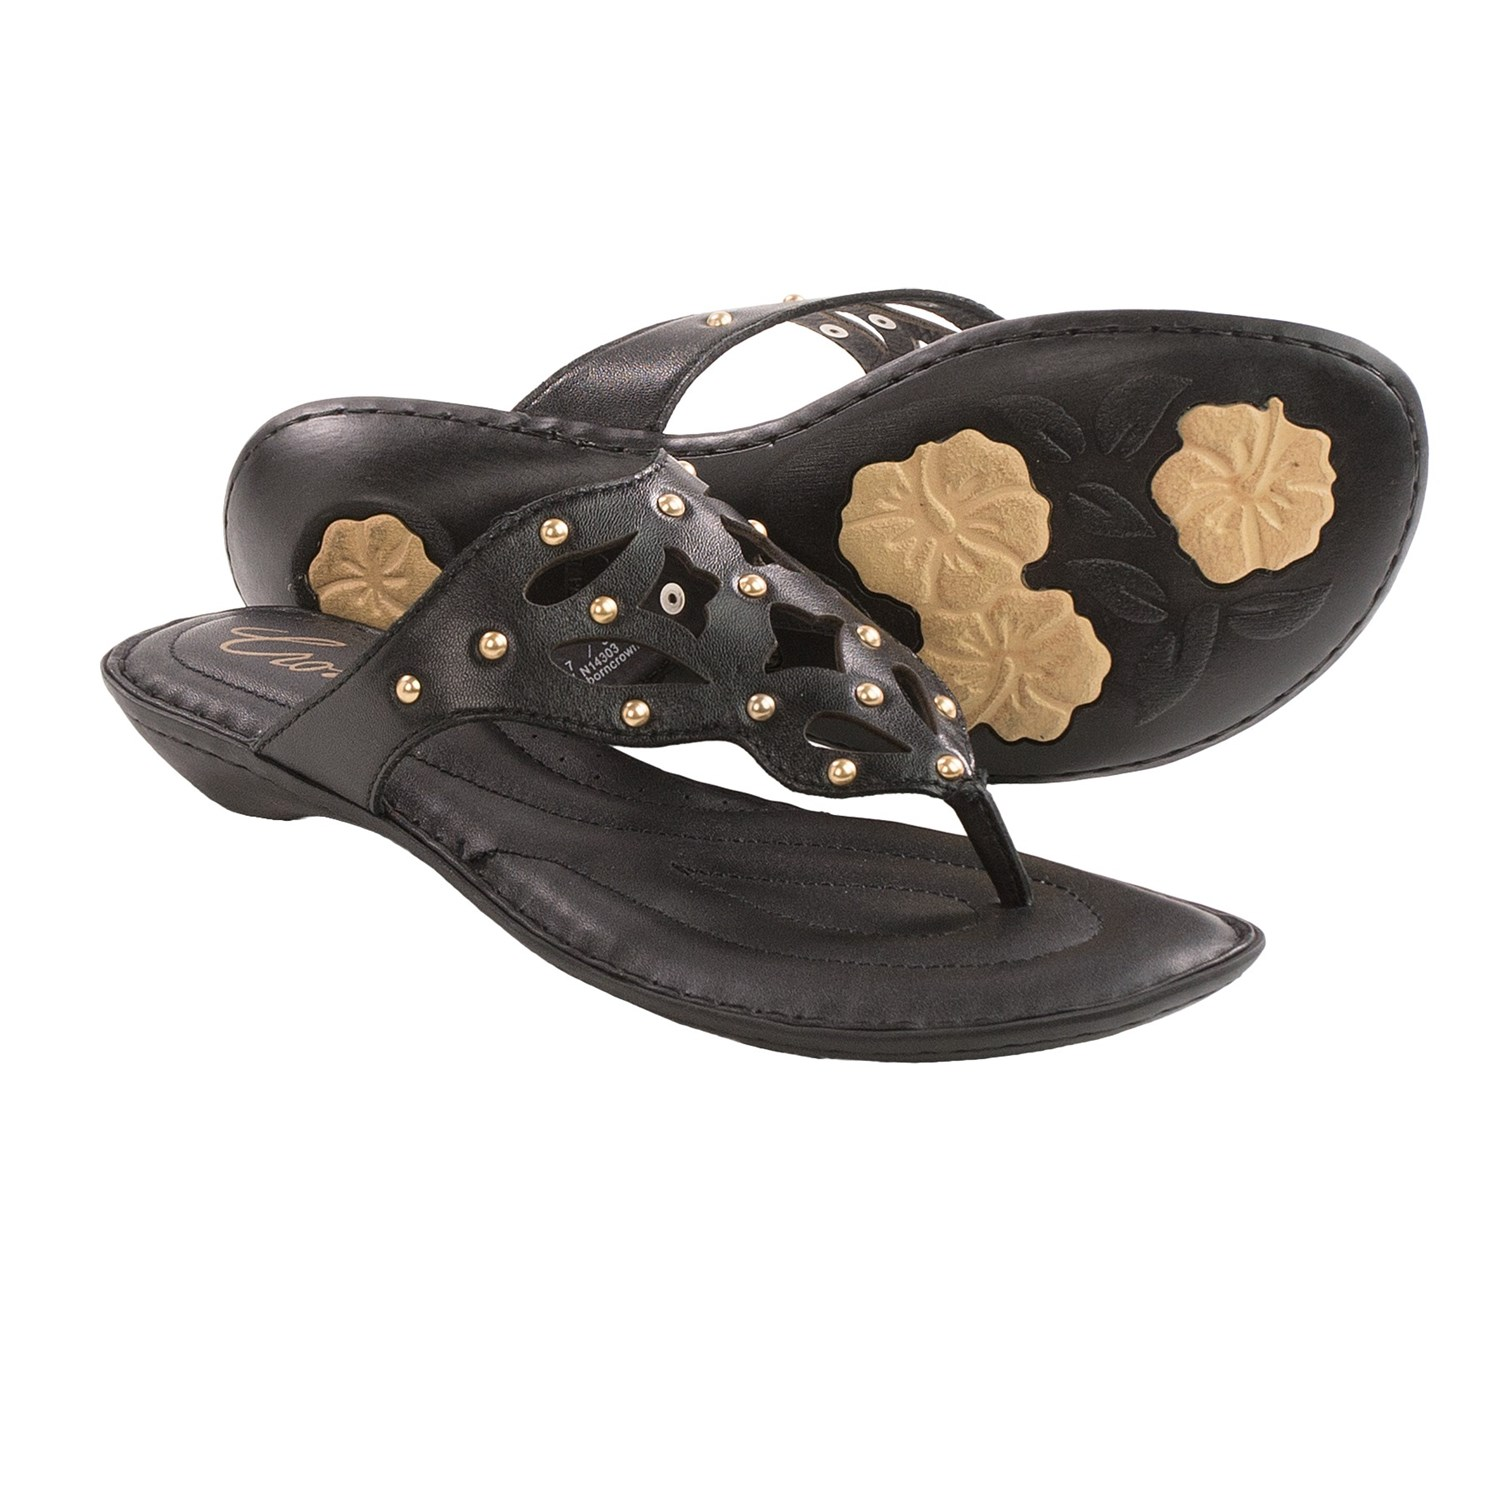 crown-by-born-milena-leather-sandals-for-women-in-black-p-9371t_03-1500.2.